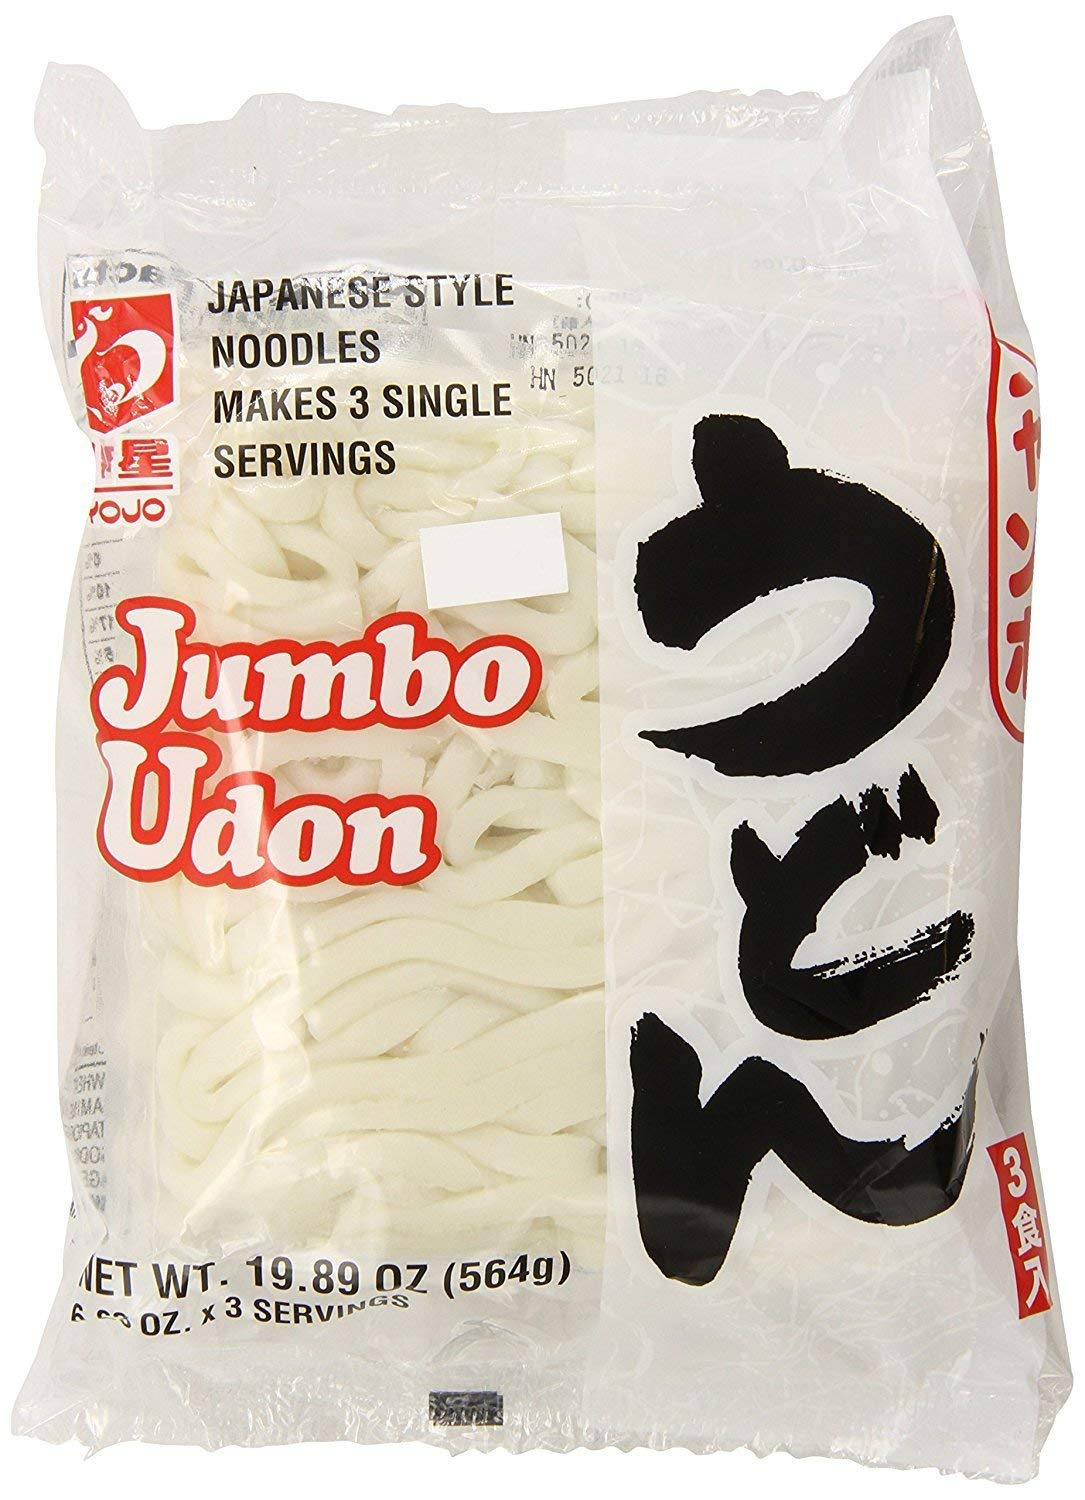 Myojo Jumbo Udon Noodles No Soup Ounce 19.89 shipfree of Pack 4 Super beauty product restock quality top